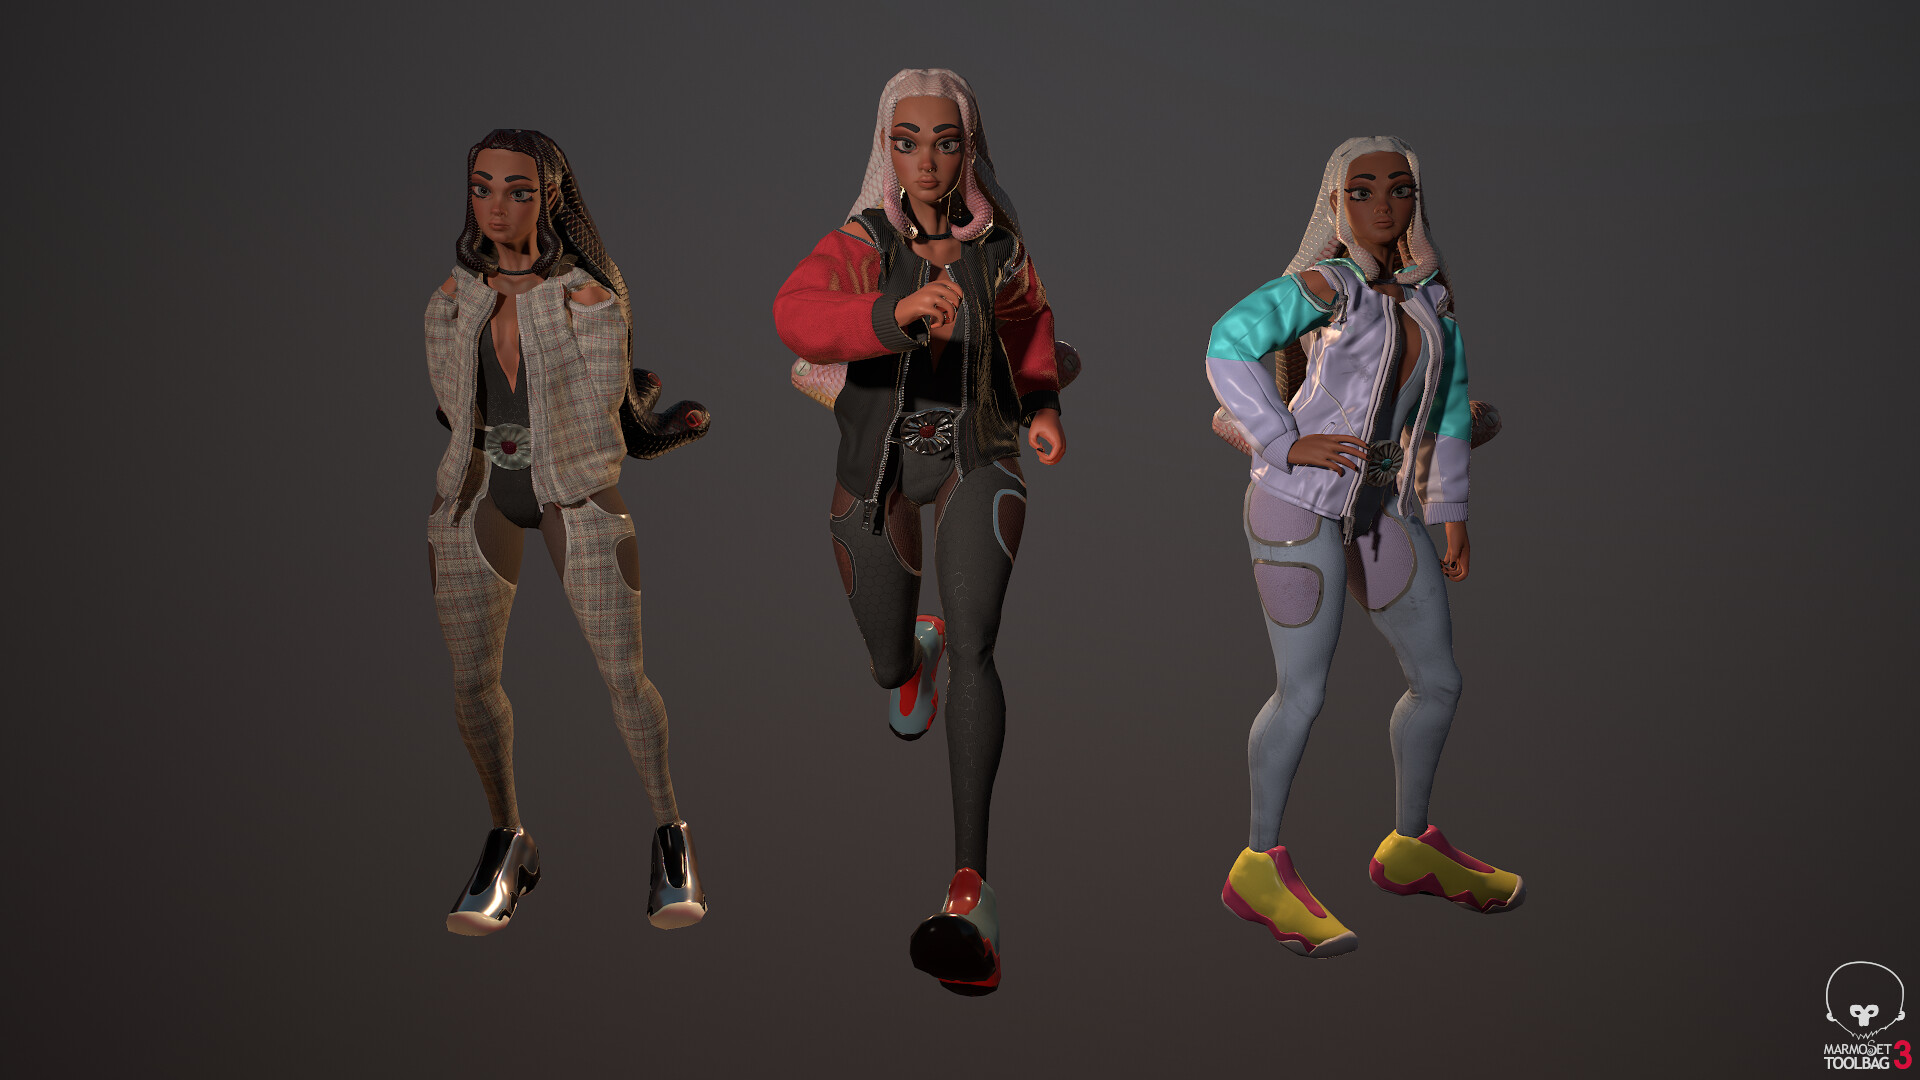 SUZU, MODERN MEDUSA - My own character concept made using zbrush, maya, and marvelous.